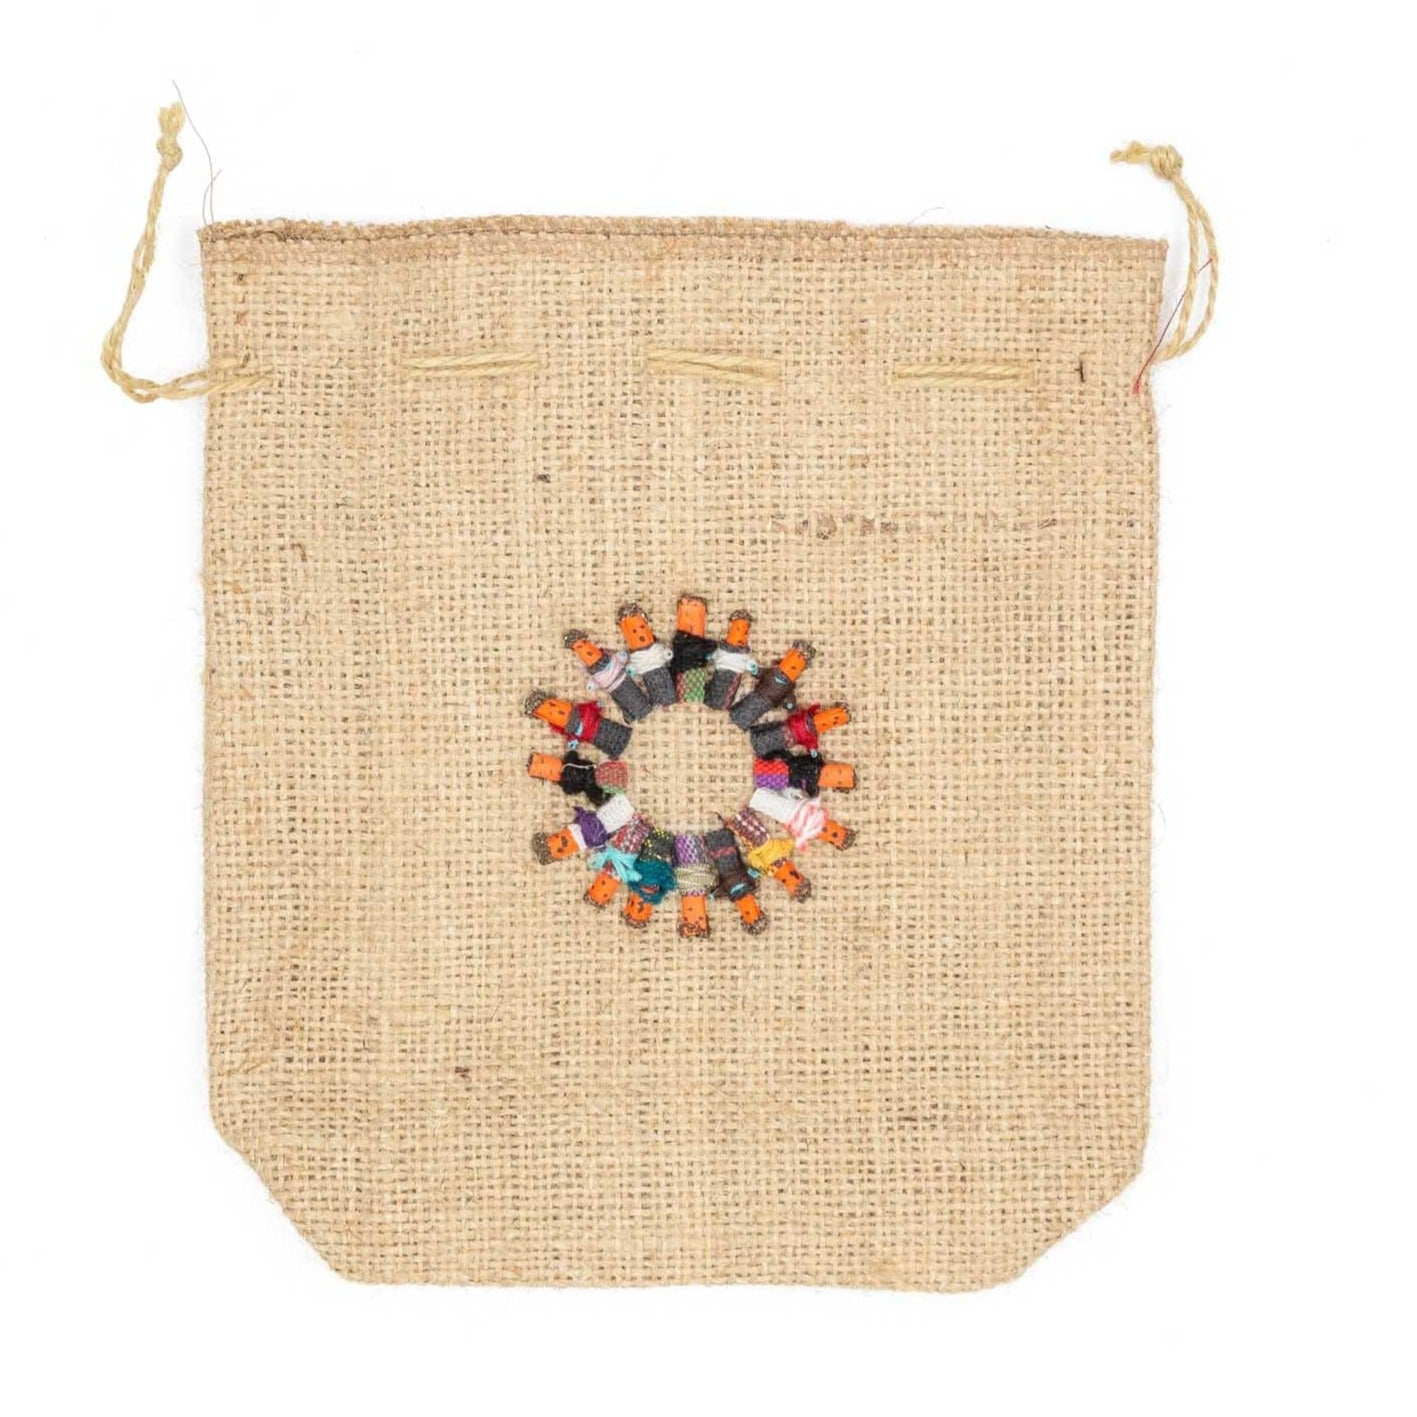 Children Of The World Hemp Drawstring Bag